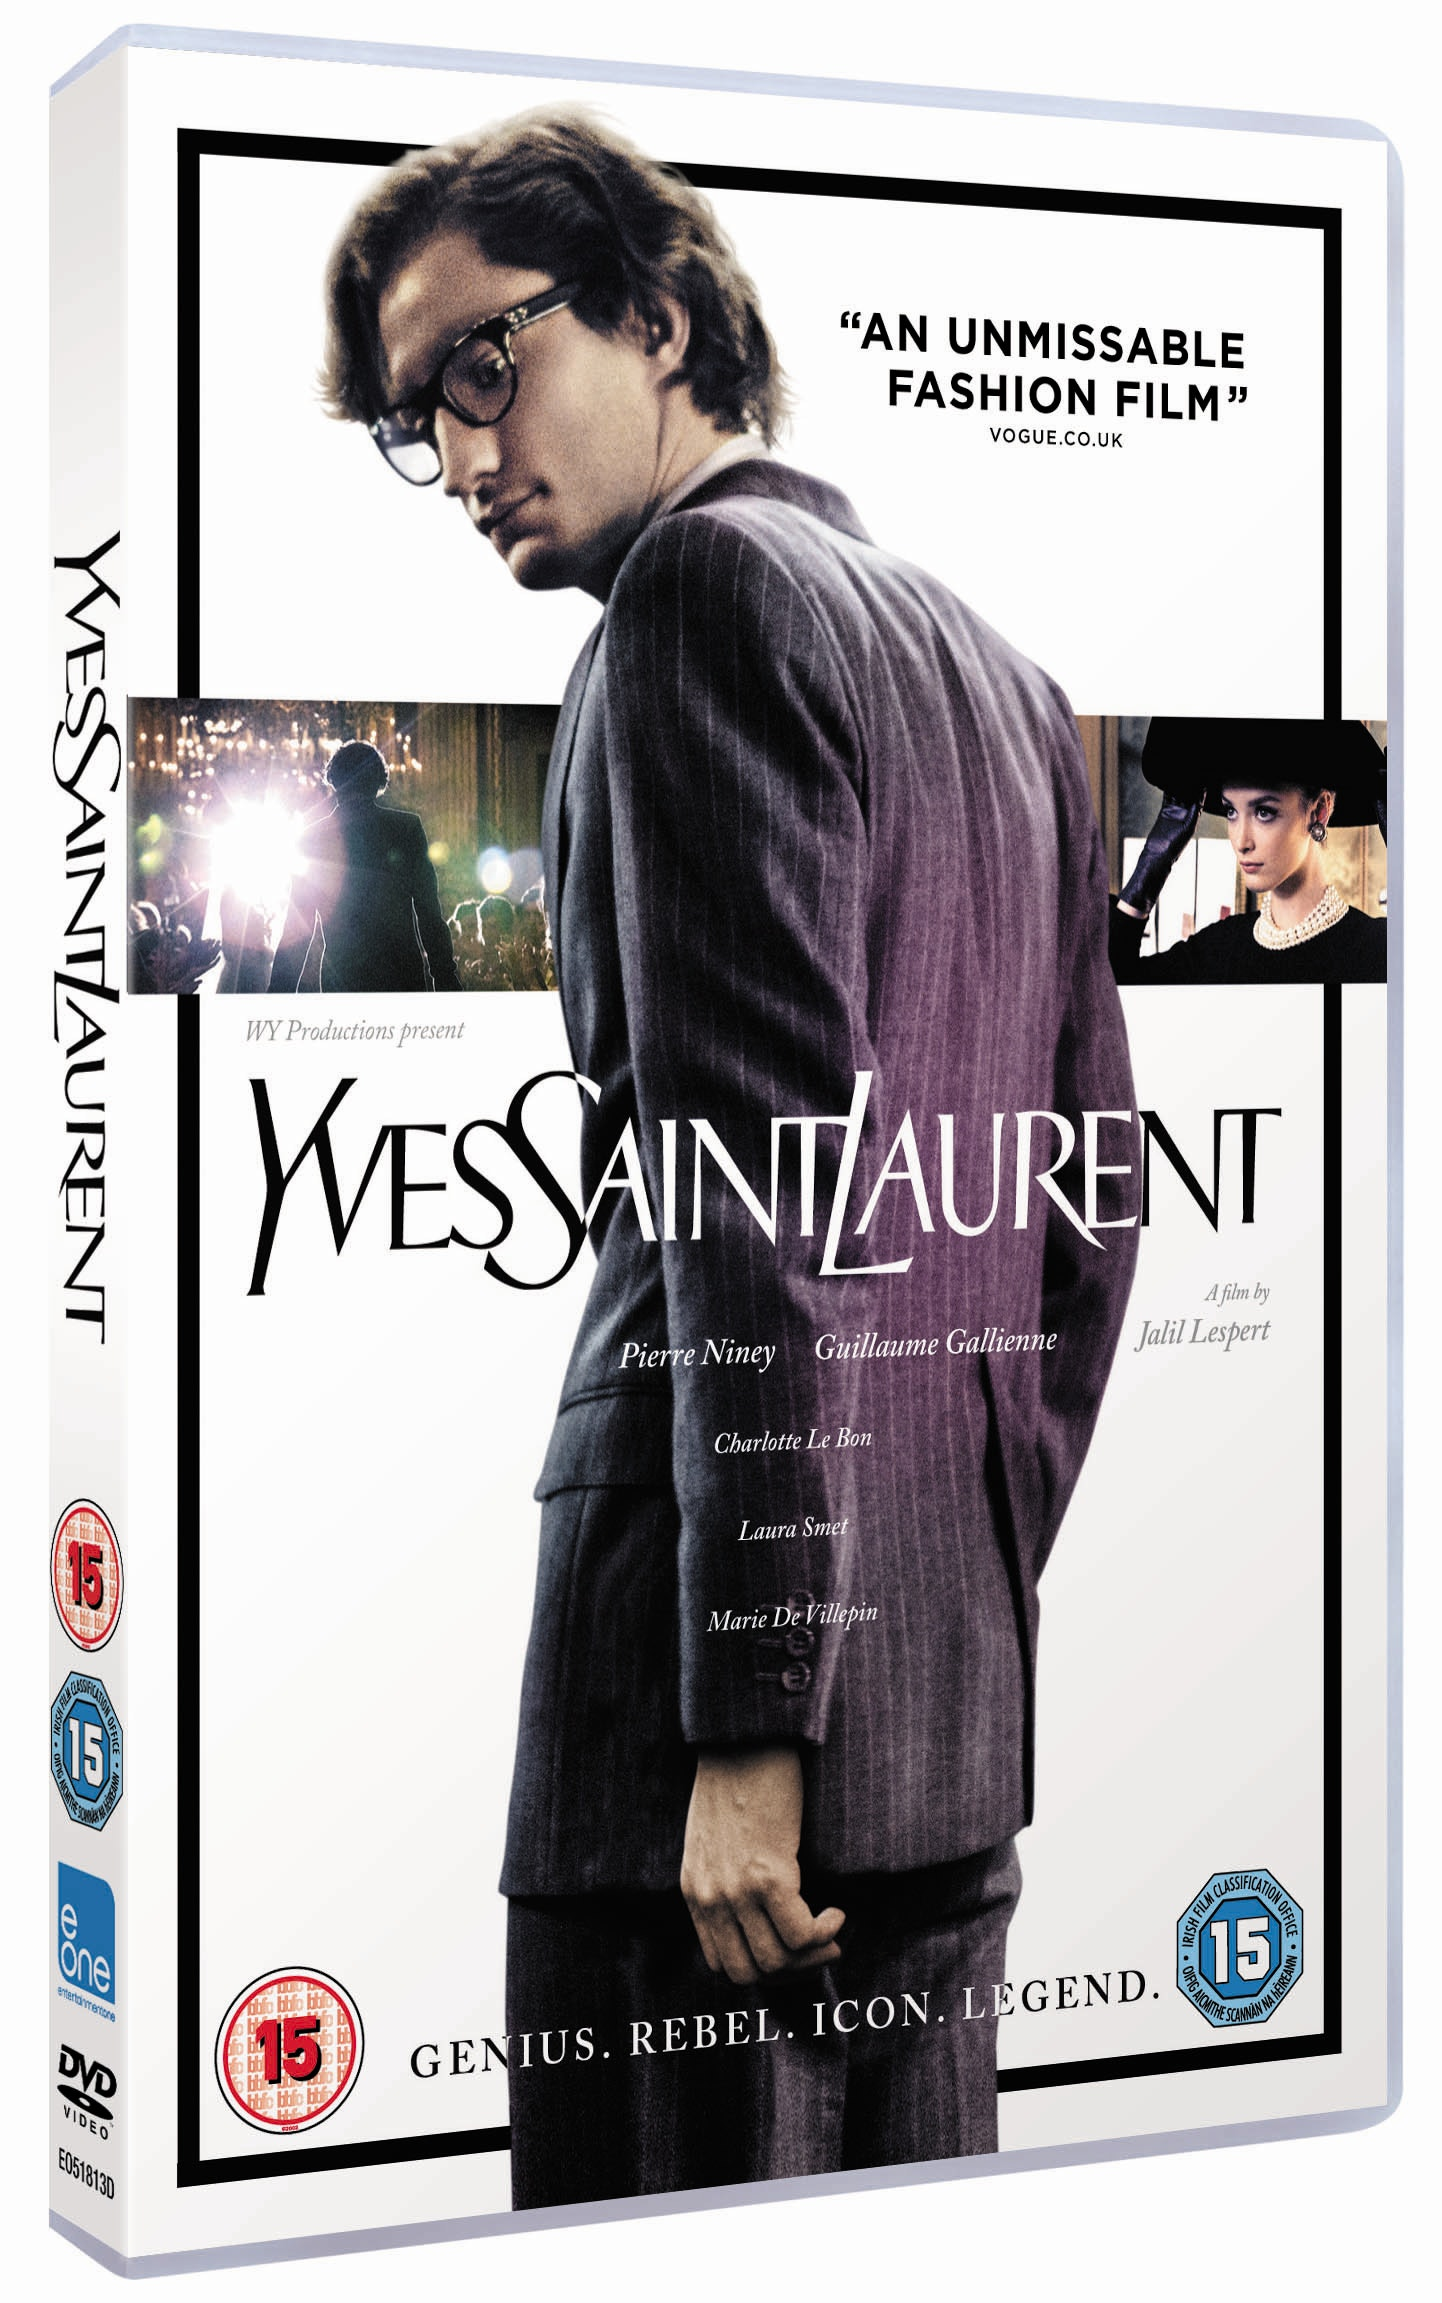 Yves Saint Laurent DVD sweepstakes